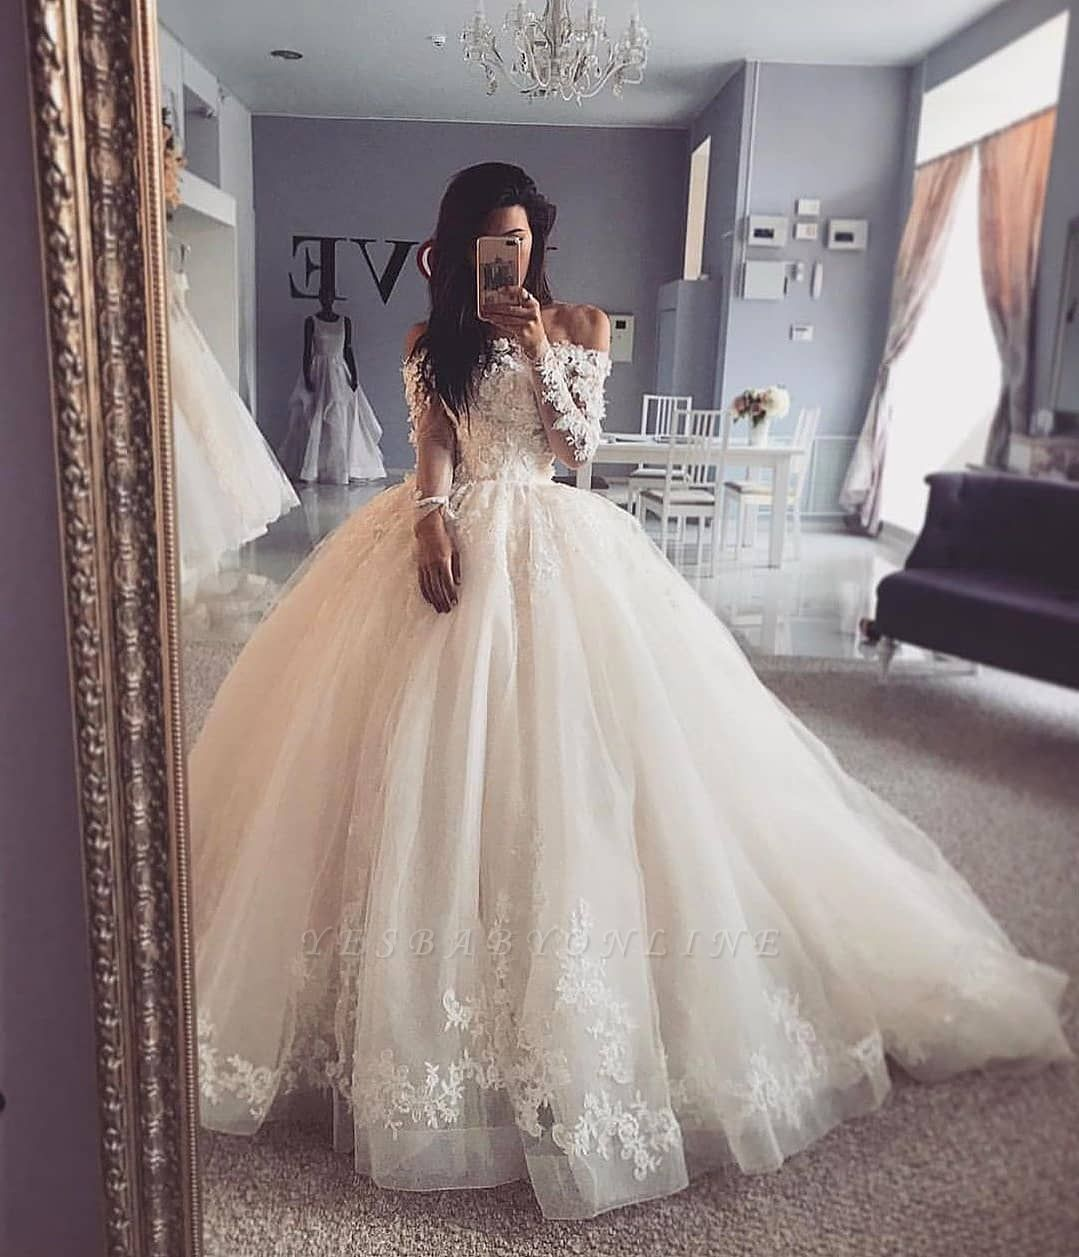 lace ball gown wedding dress with sleeves off 20   medpharmres.com